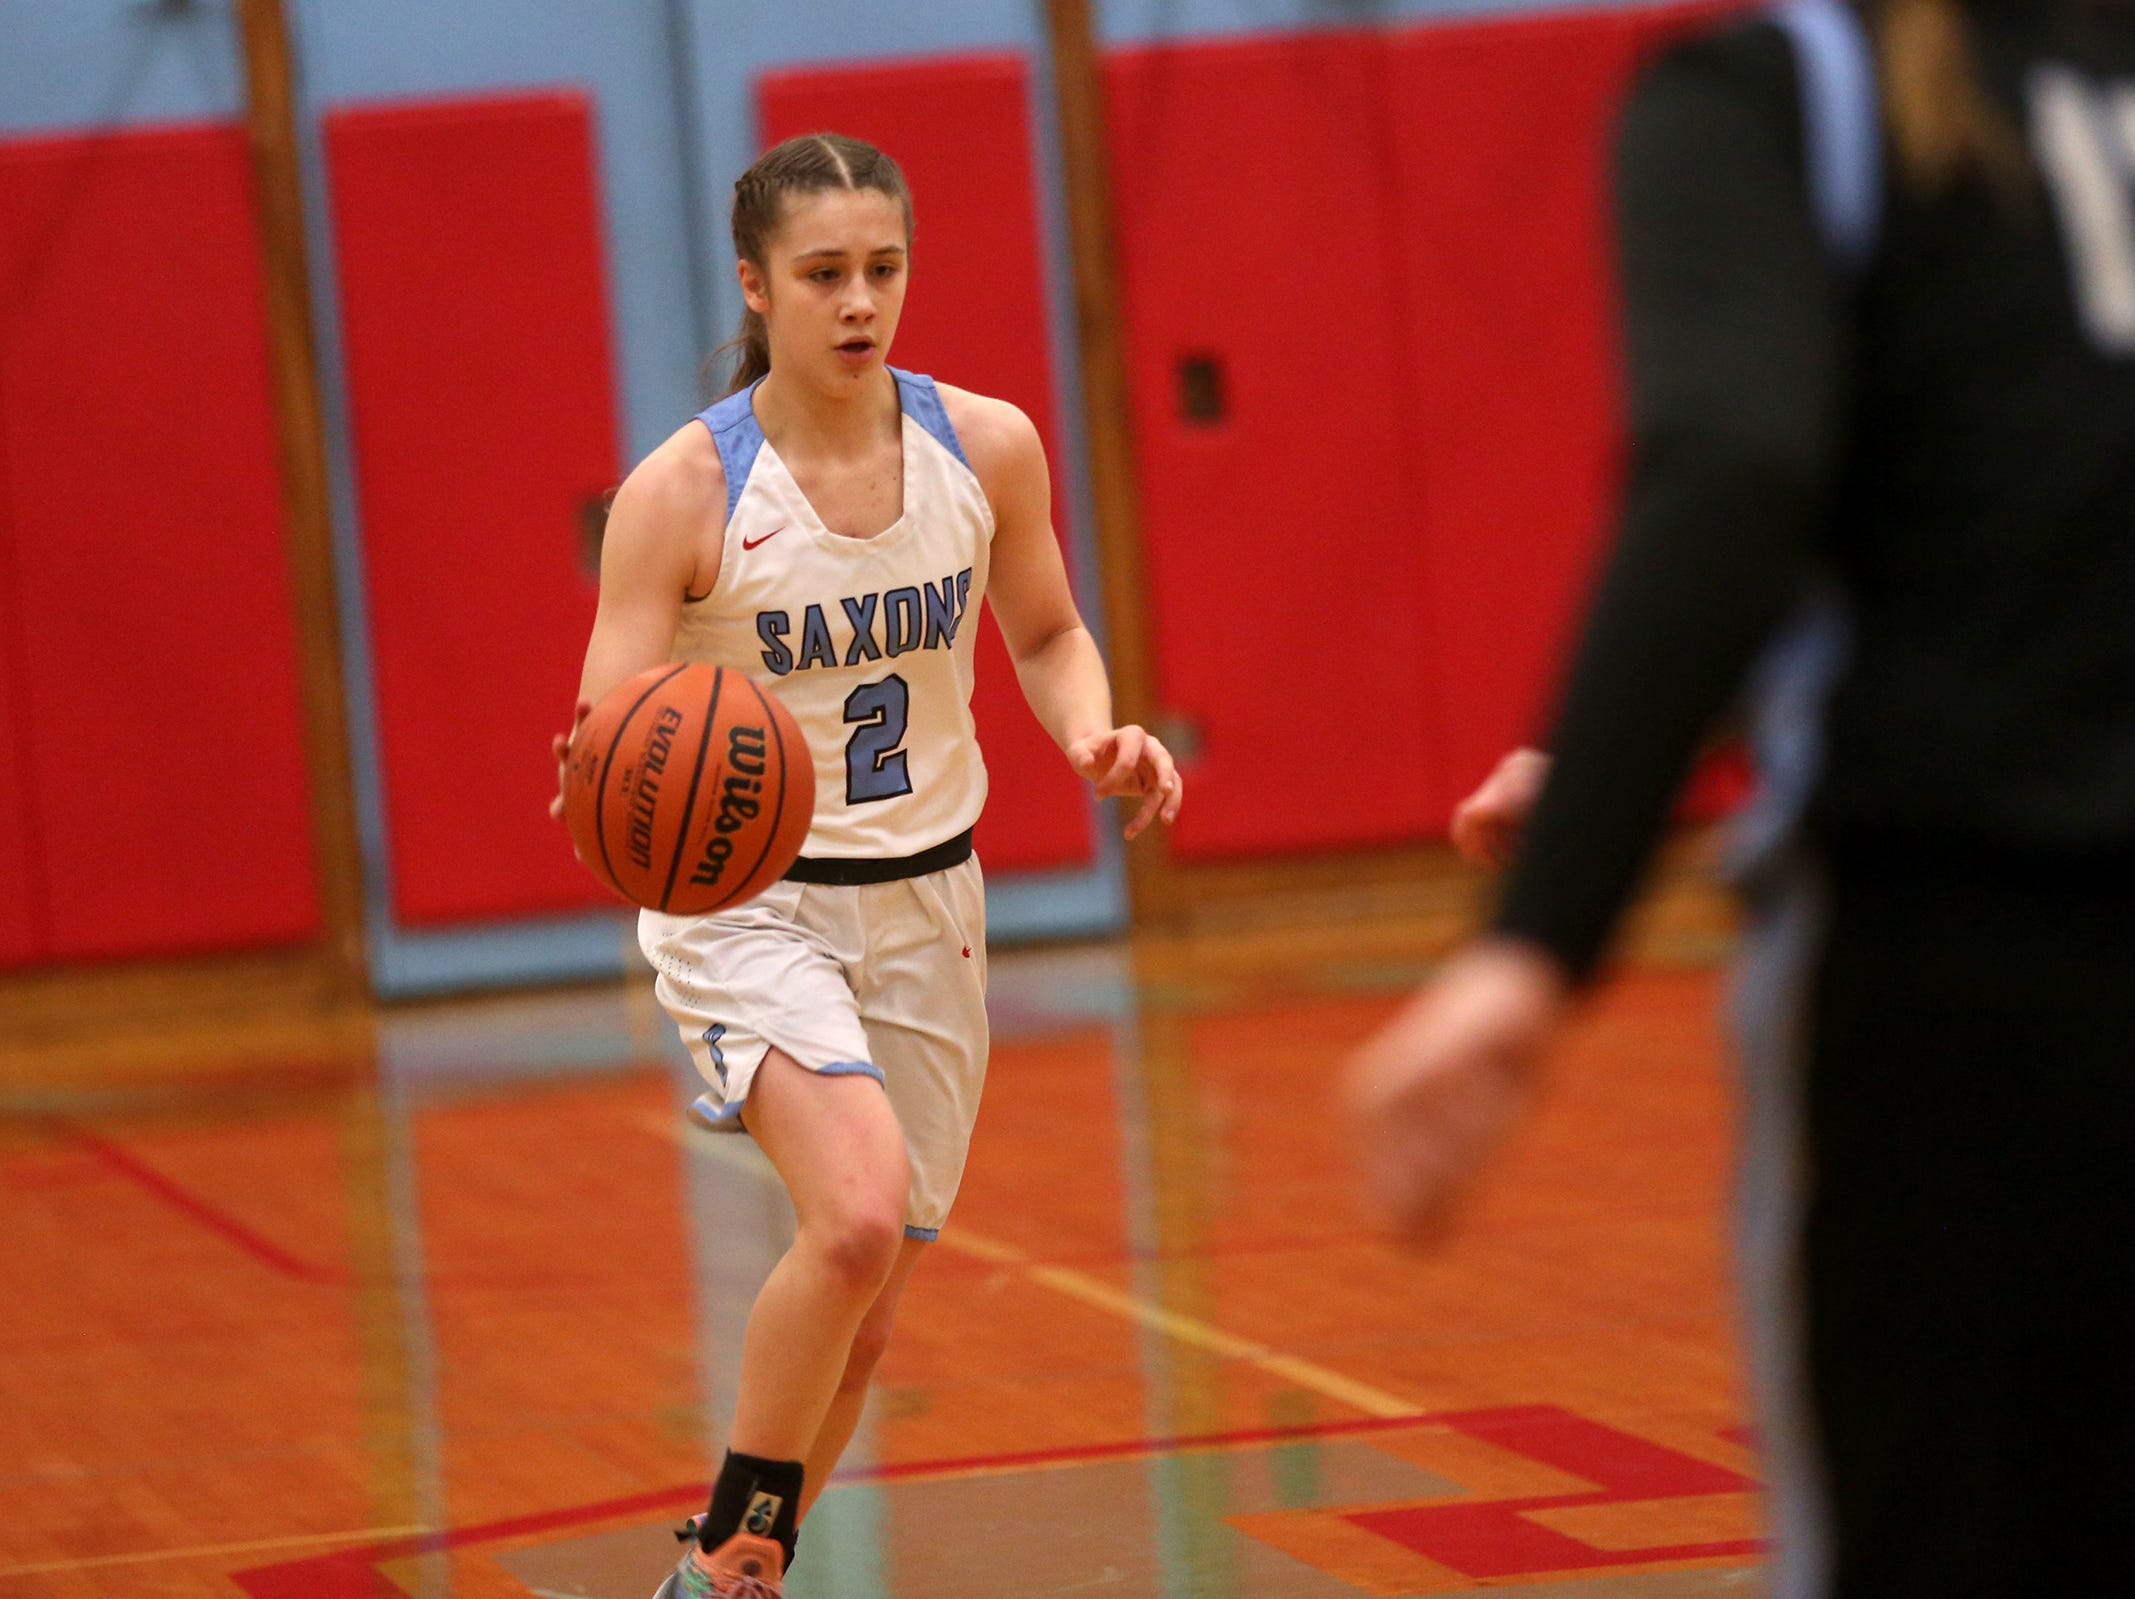 South Salem's Hilary James (2) dribbles during the South Salem vs. Mountainside girls basketball OSAA playoff game in Salem on Thursday, Feb. 28, 2019.